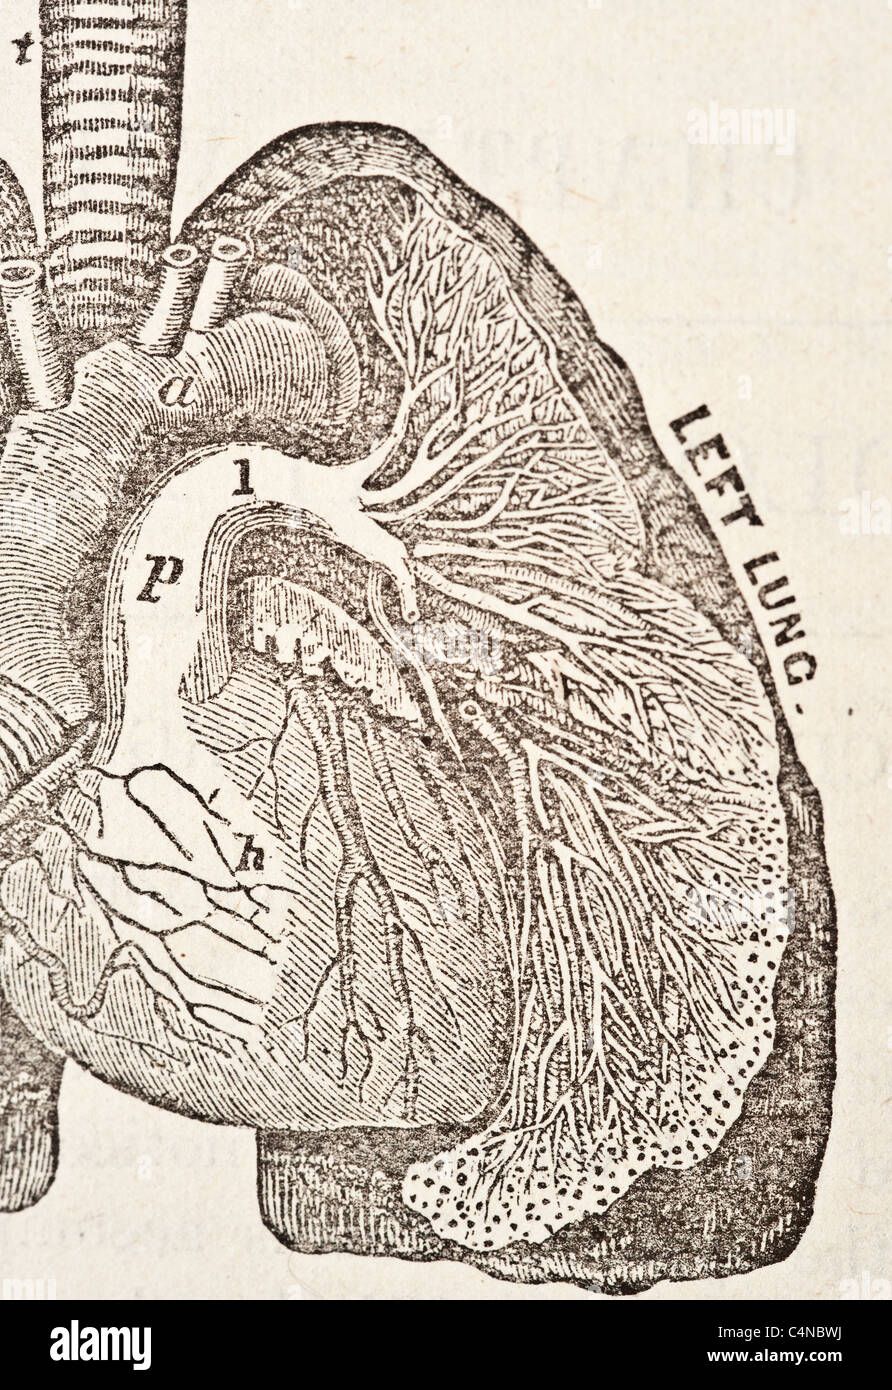 Antique medical illustration of a human heart and cardiovascular system - Stock Image